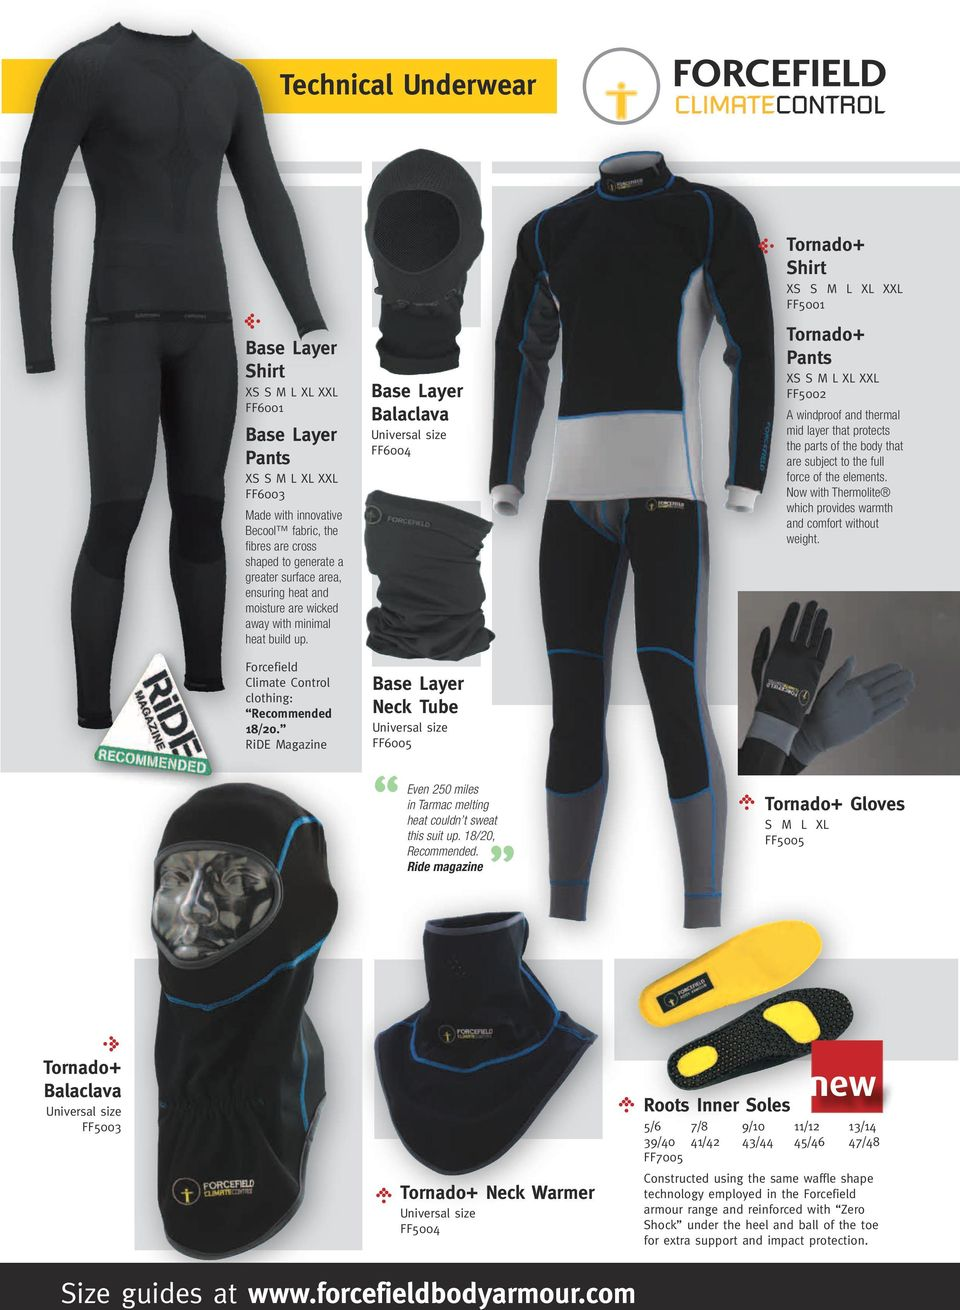 RiDE Magazine Base Layer Balaclava Universal size FF6004 Base Layer Neck Tube Universal size FF6005 Even 250 miles in Tarmac melting heat couldn t sweat this suit up. 18/20, Recommended.